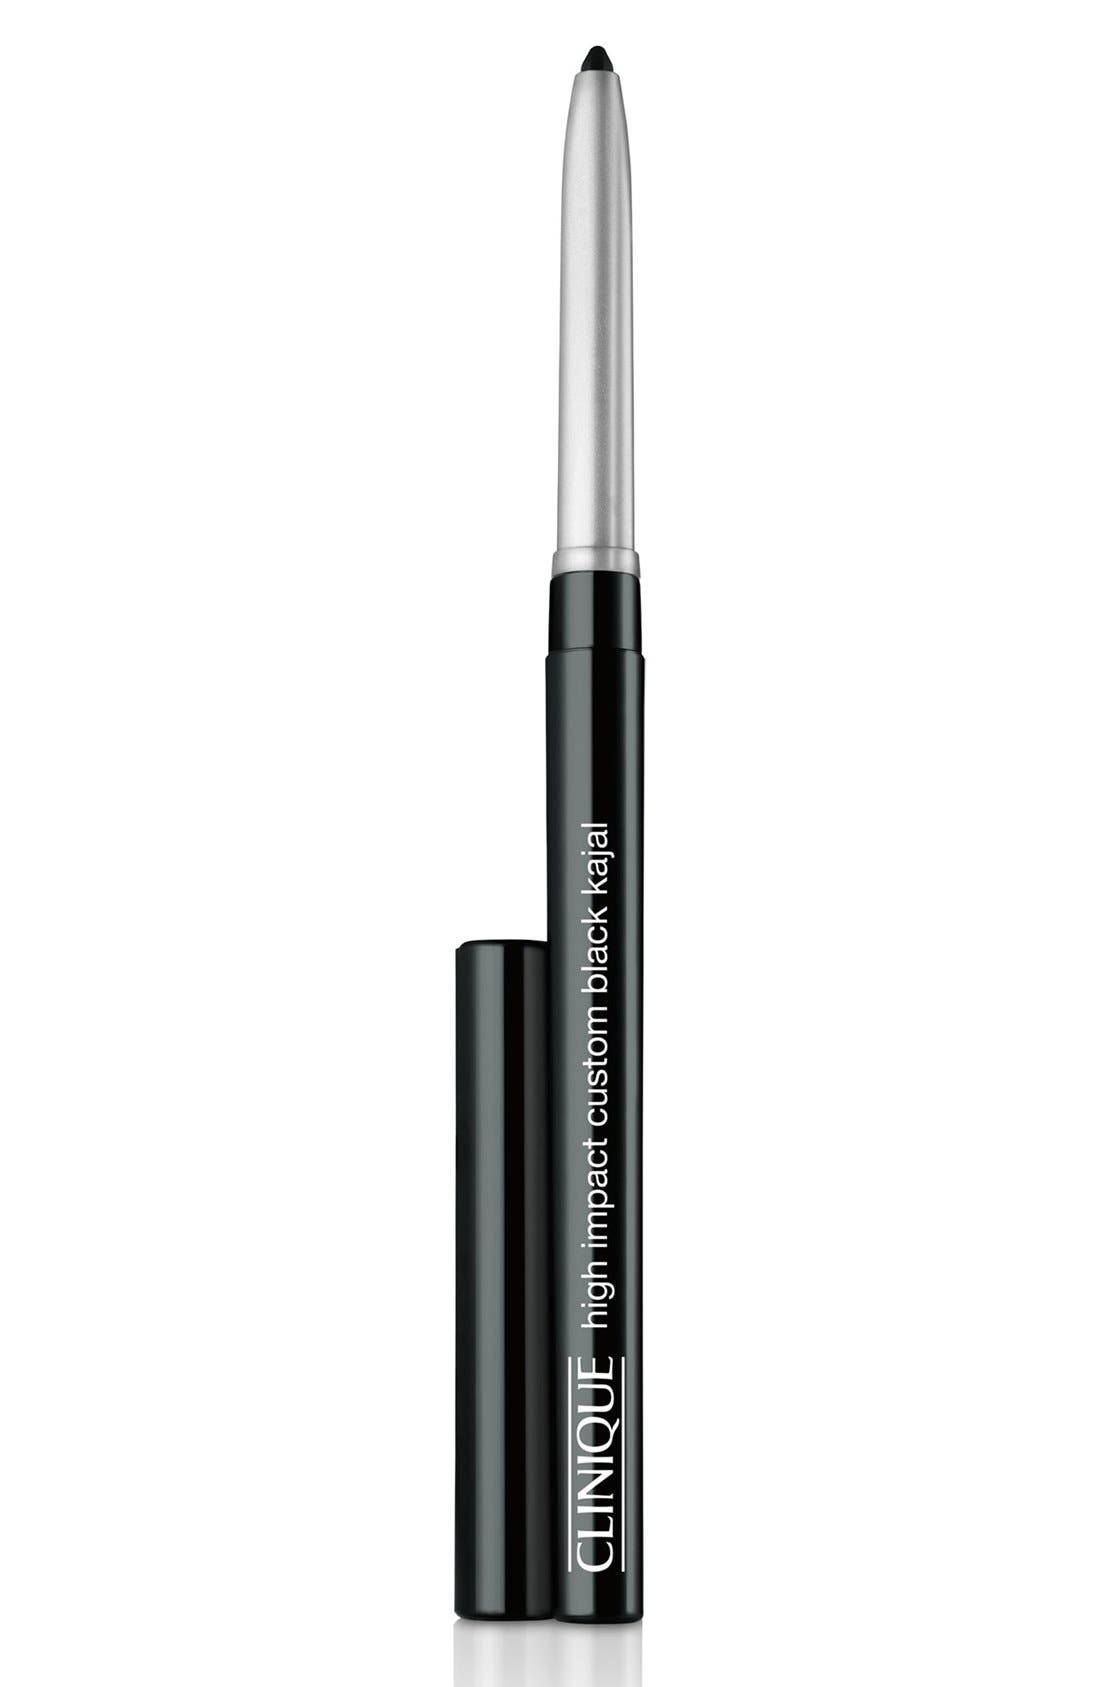 High Impact Custom Black Kajal Eyeliner Pencil,                             Main thumbnail 1, color,                             BLACK